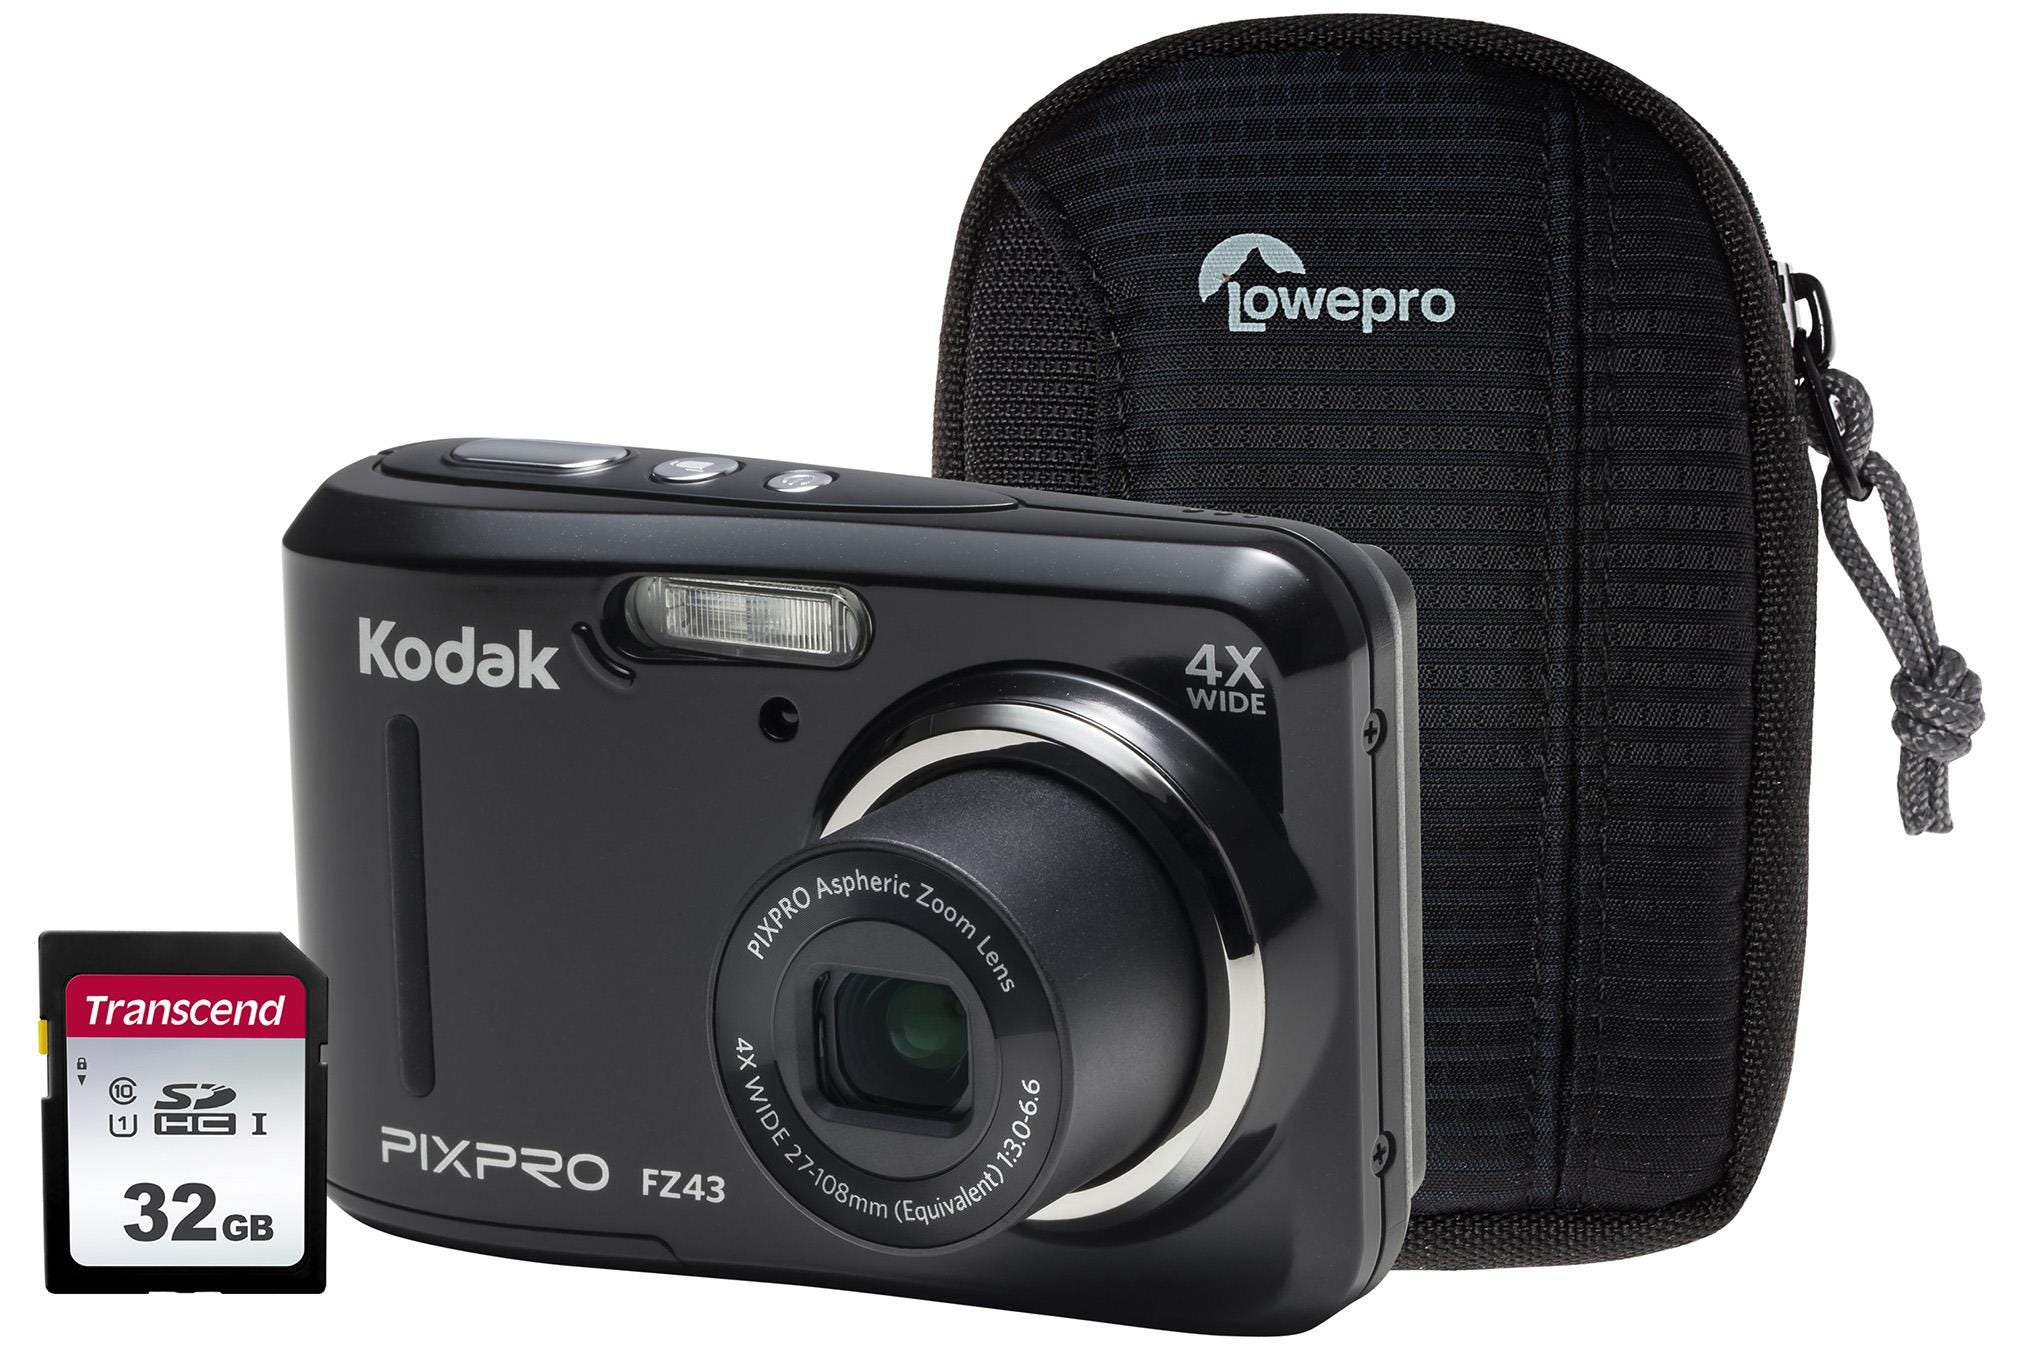 Kodak PIXPRO FZ43 16MP 4x Zoom Compact Camera, 32GB SD Card    Case - Black